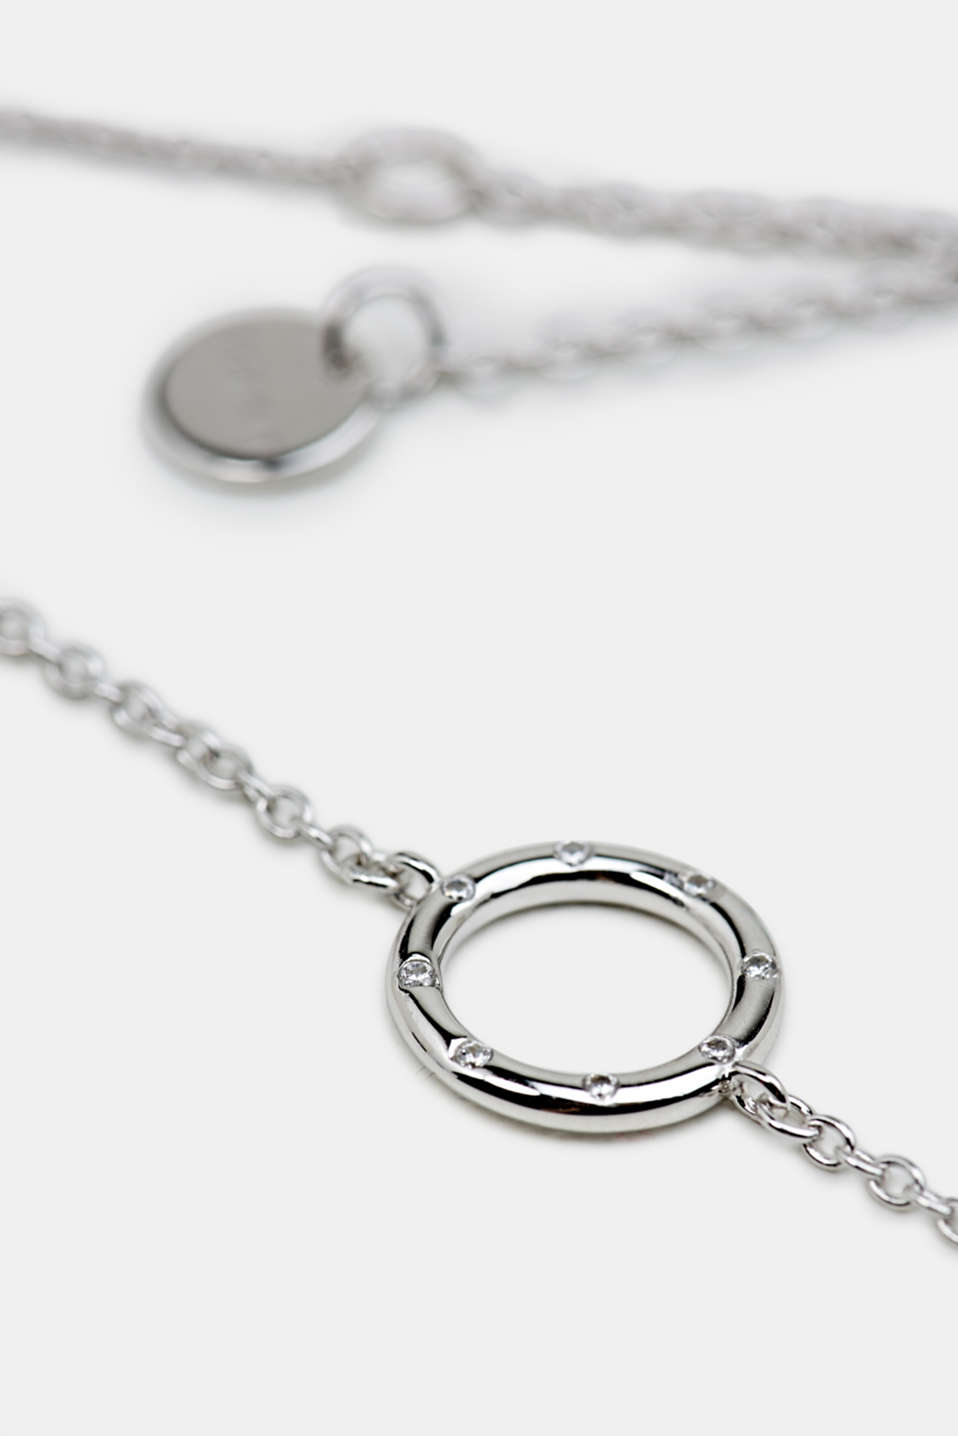 Bracelet with zirconia, sterling silver, LCSILVER, detail image number 1